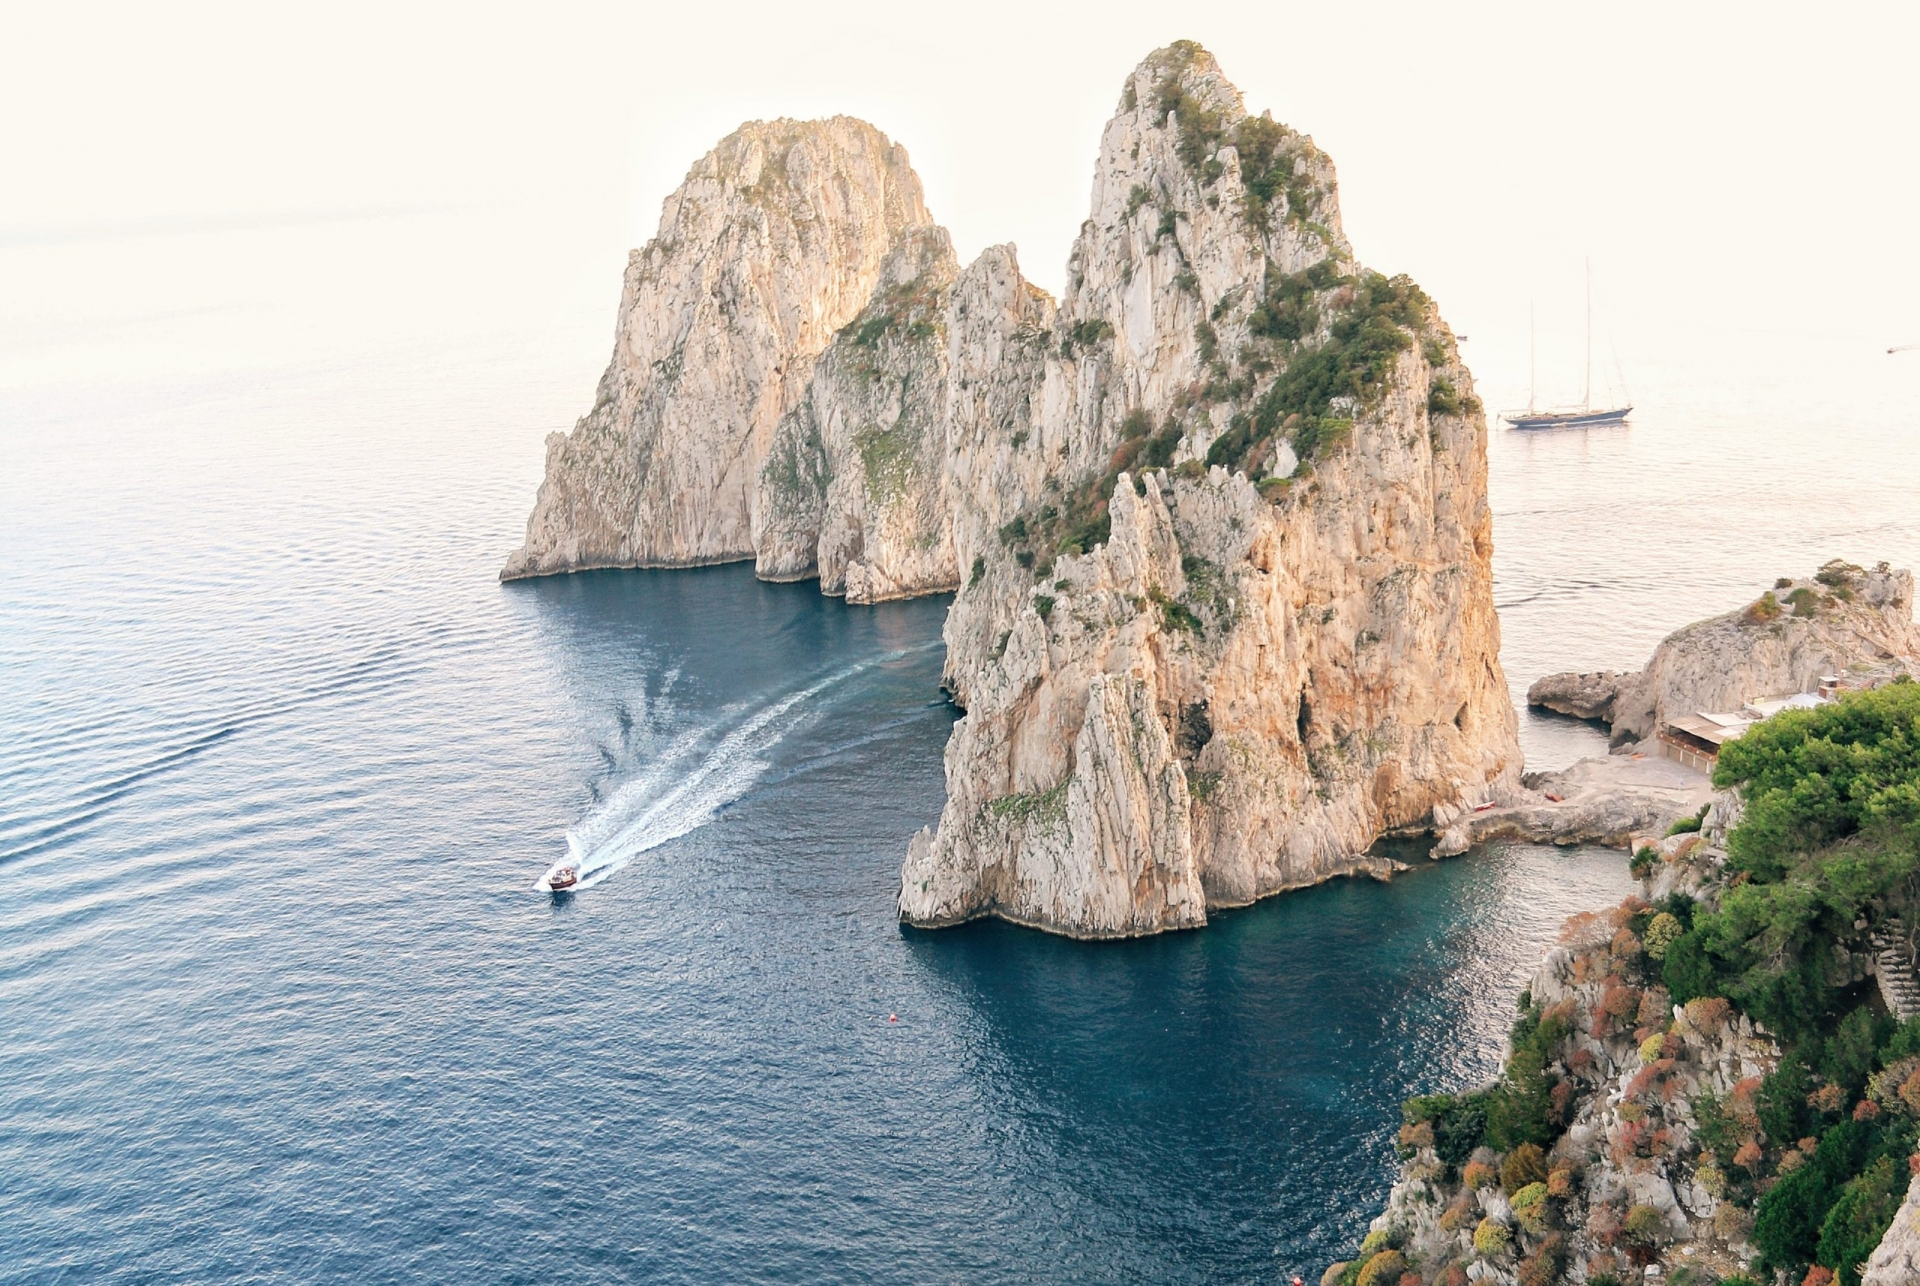 What's so special about Capri Island, Italy that Hollywood stars